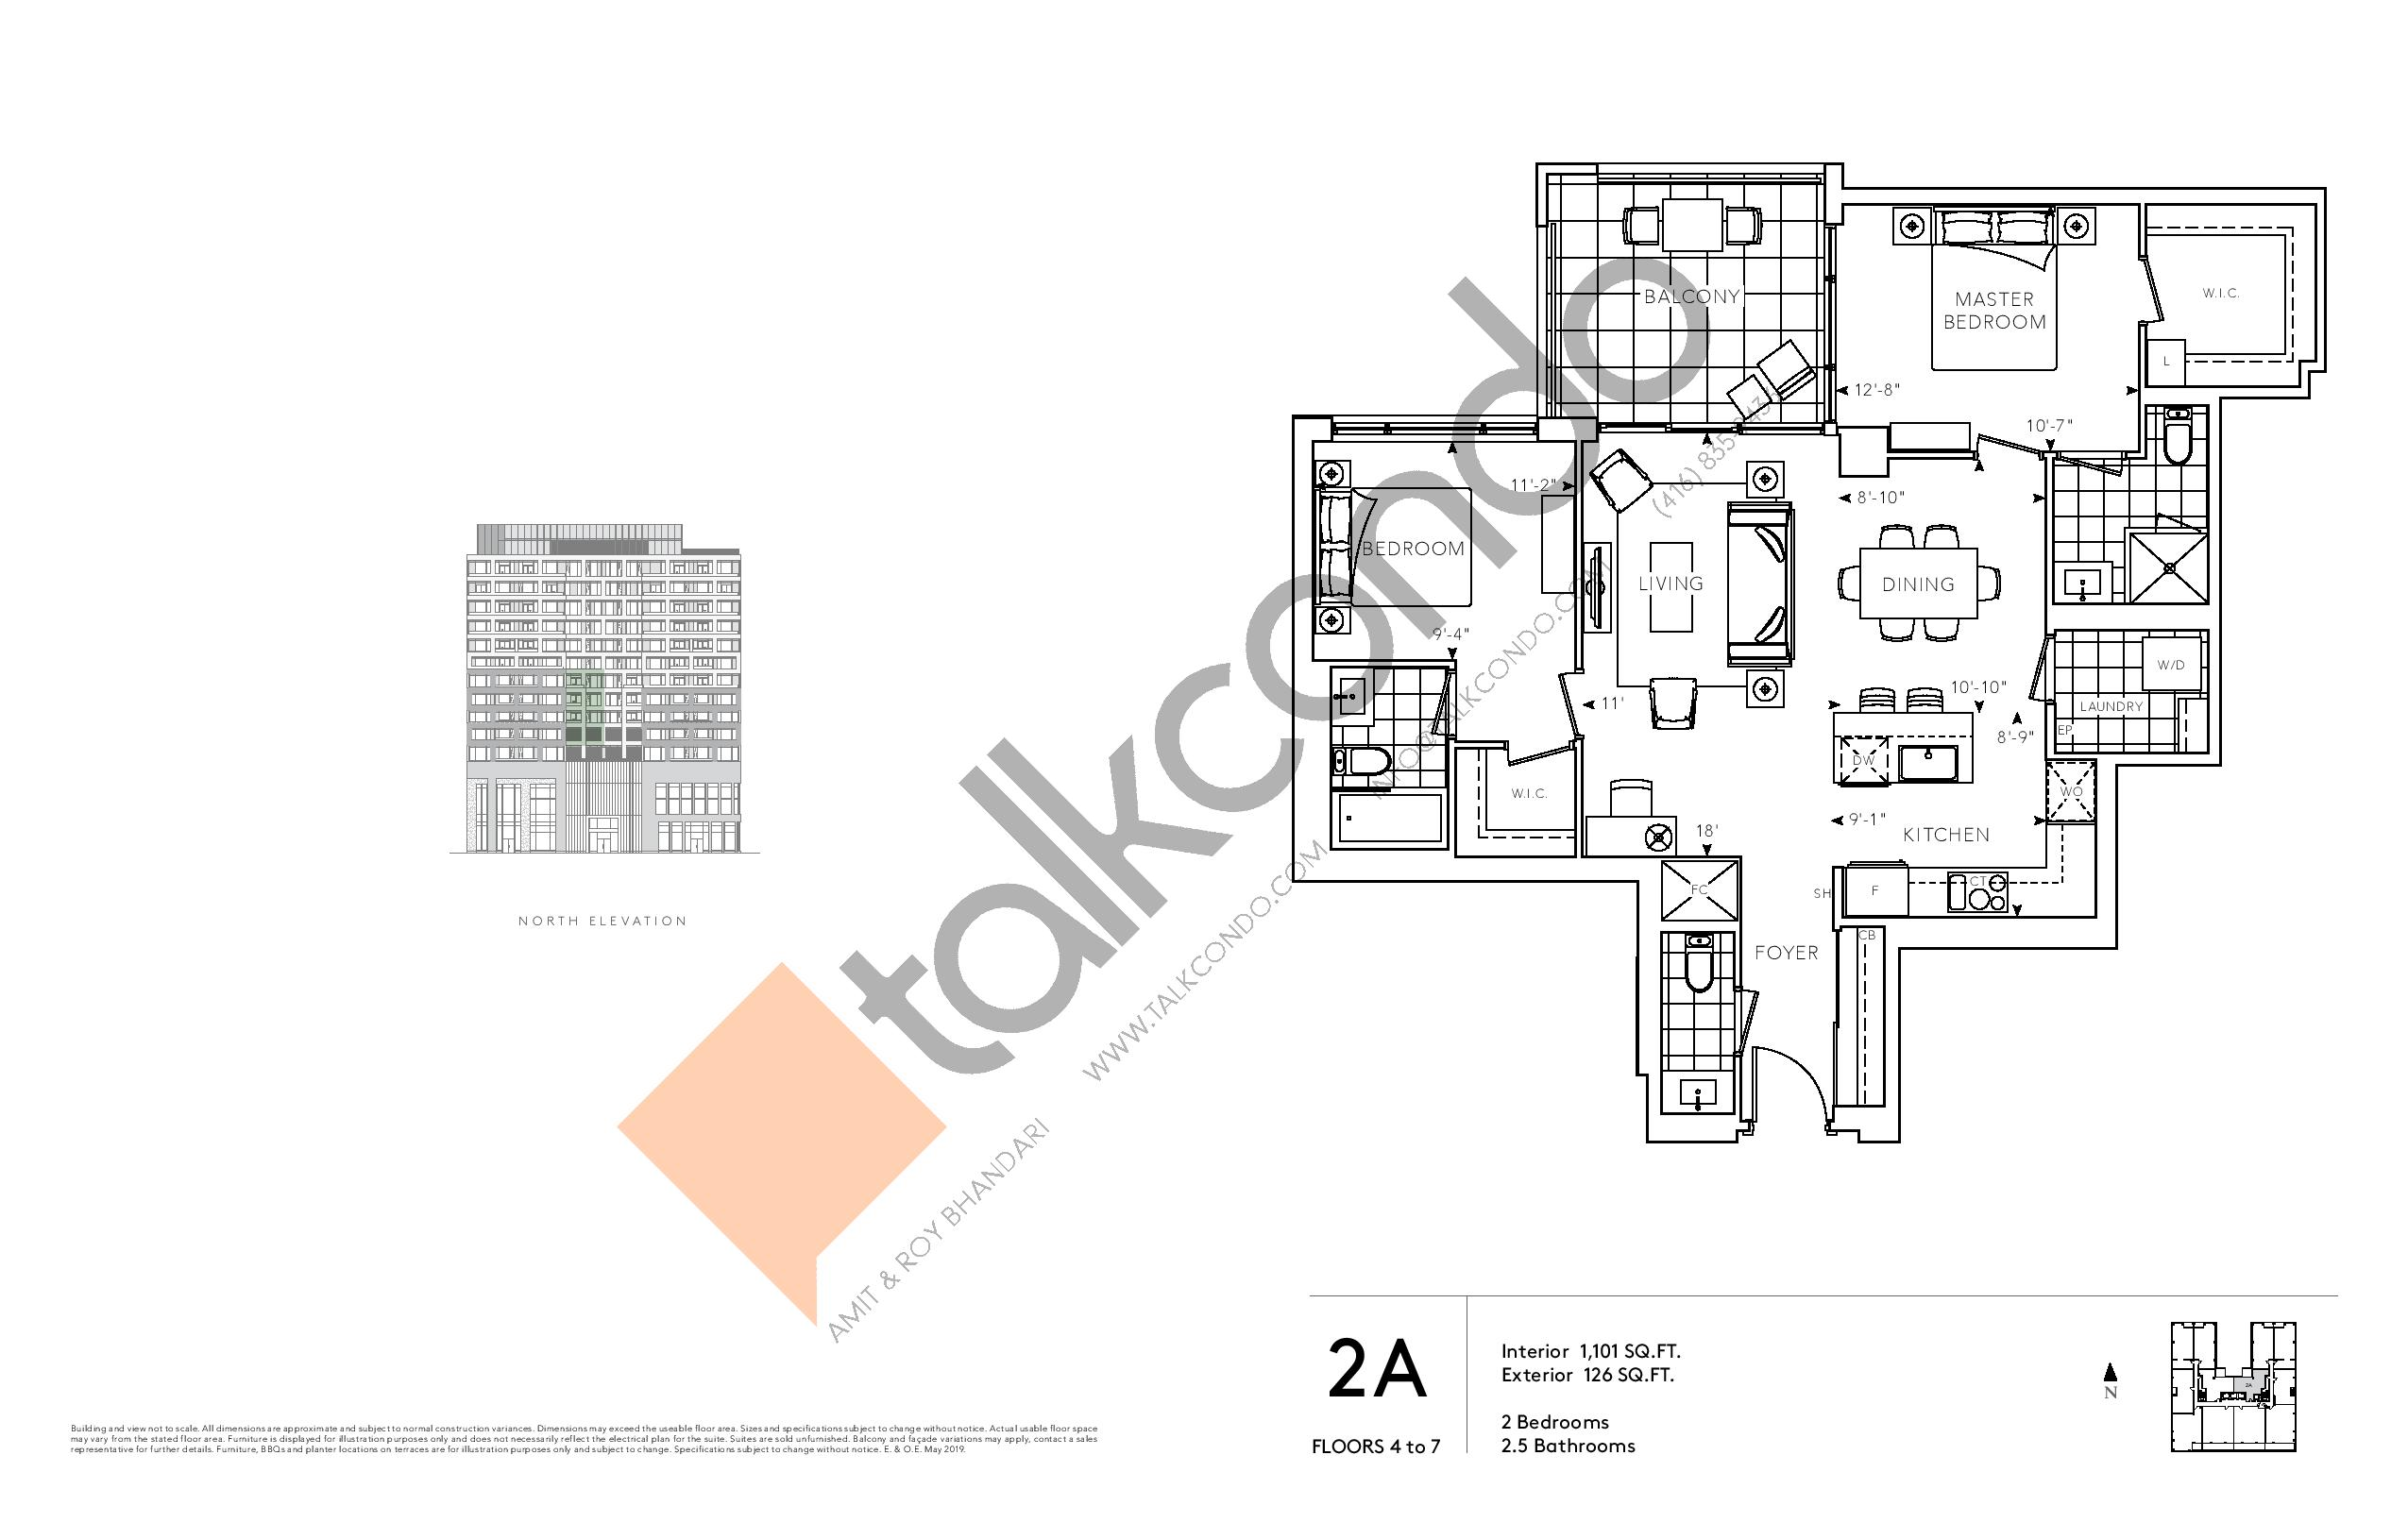 2A - Signature Series Floor Plan at Tridel at The Well Condos - 1101 sq.ft